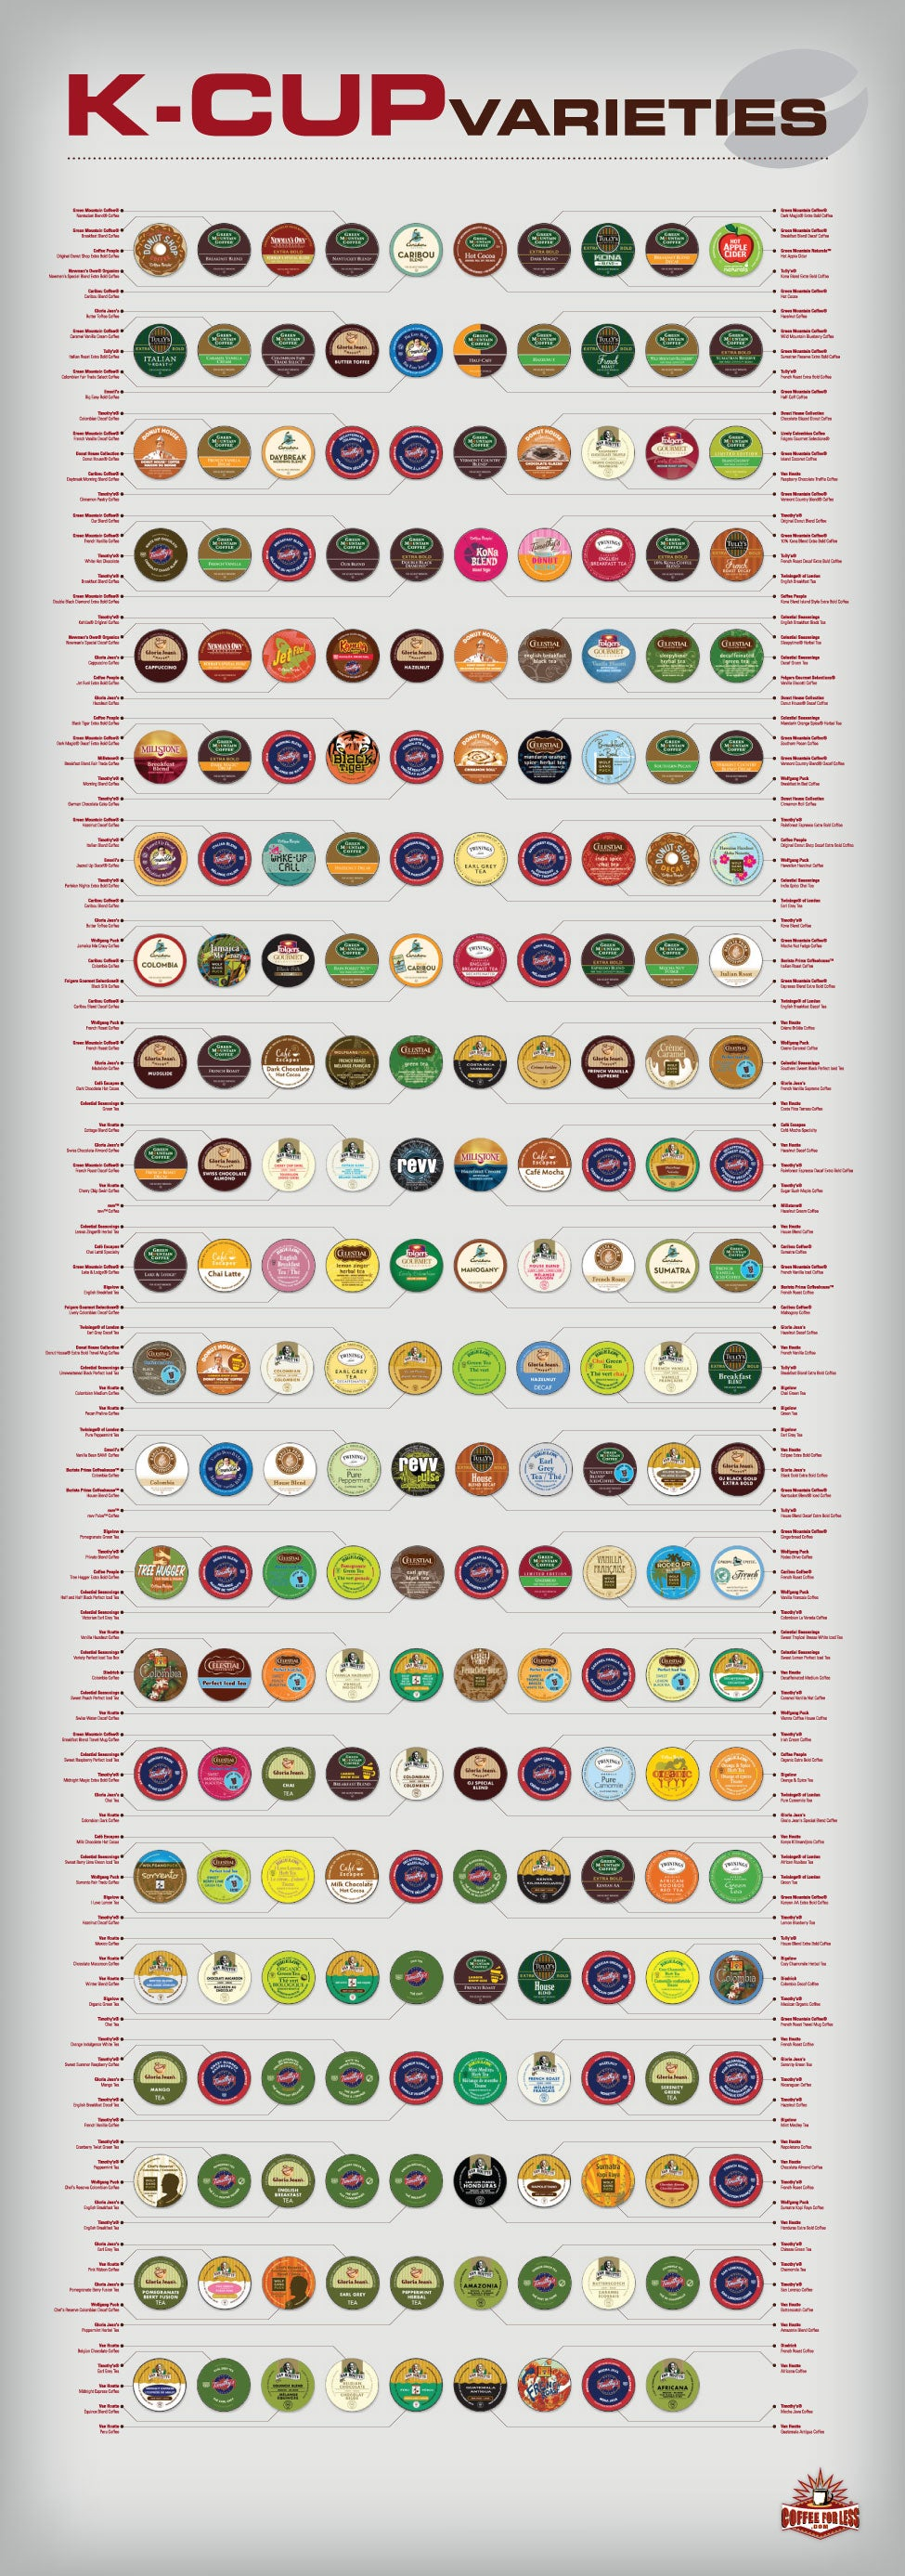 Curious about the broad spectrum of flavors and varieties available to Keurig K-Cup users? Take a look at this chart!